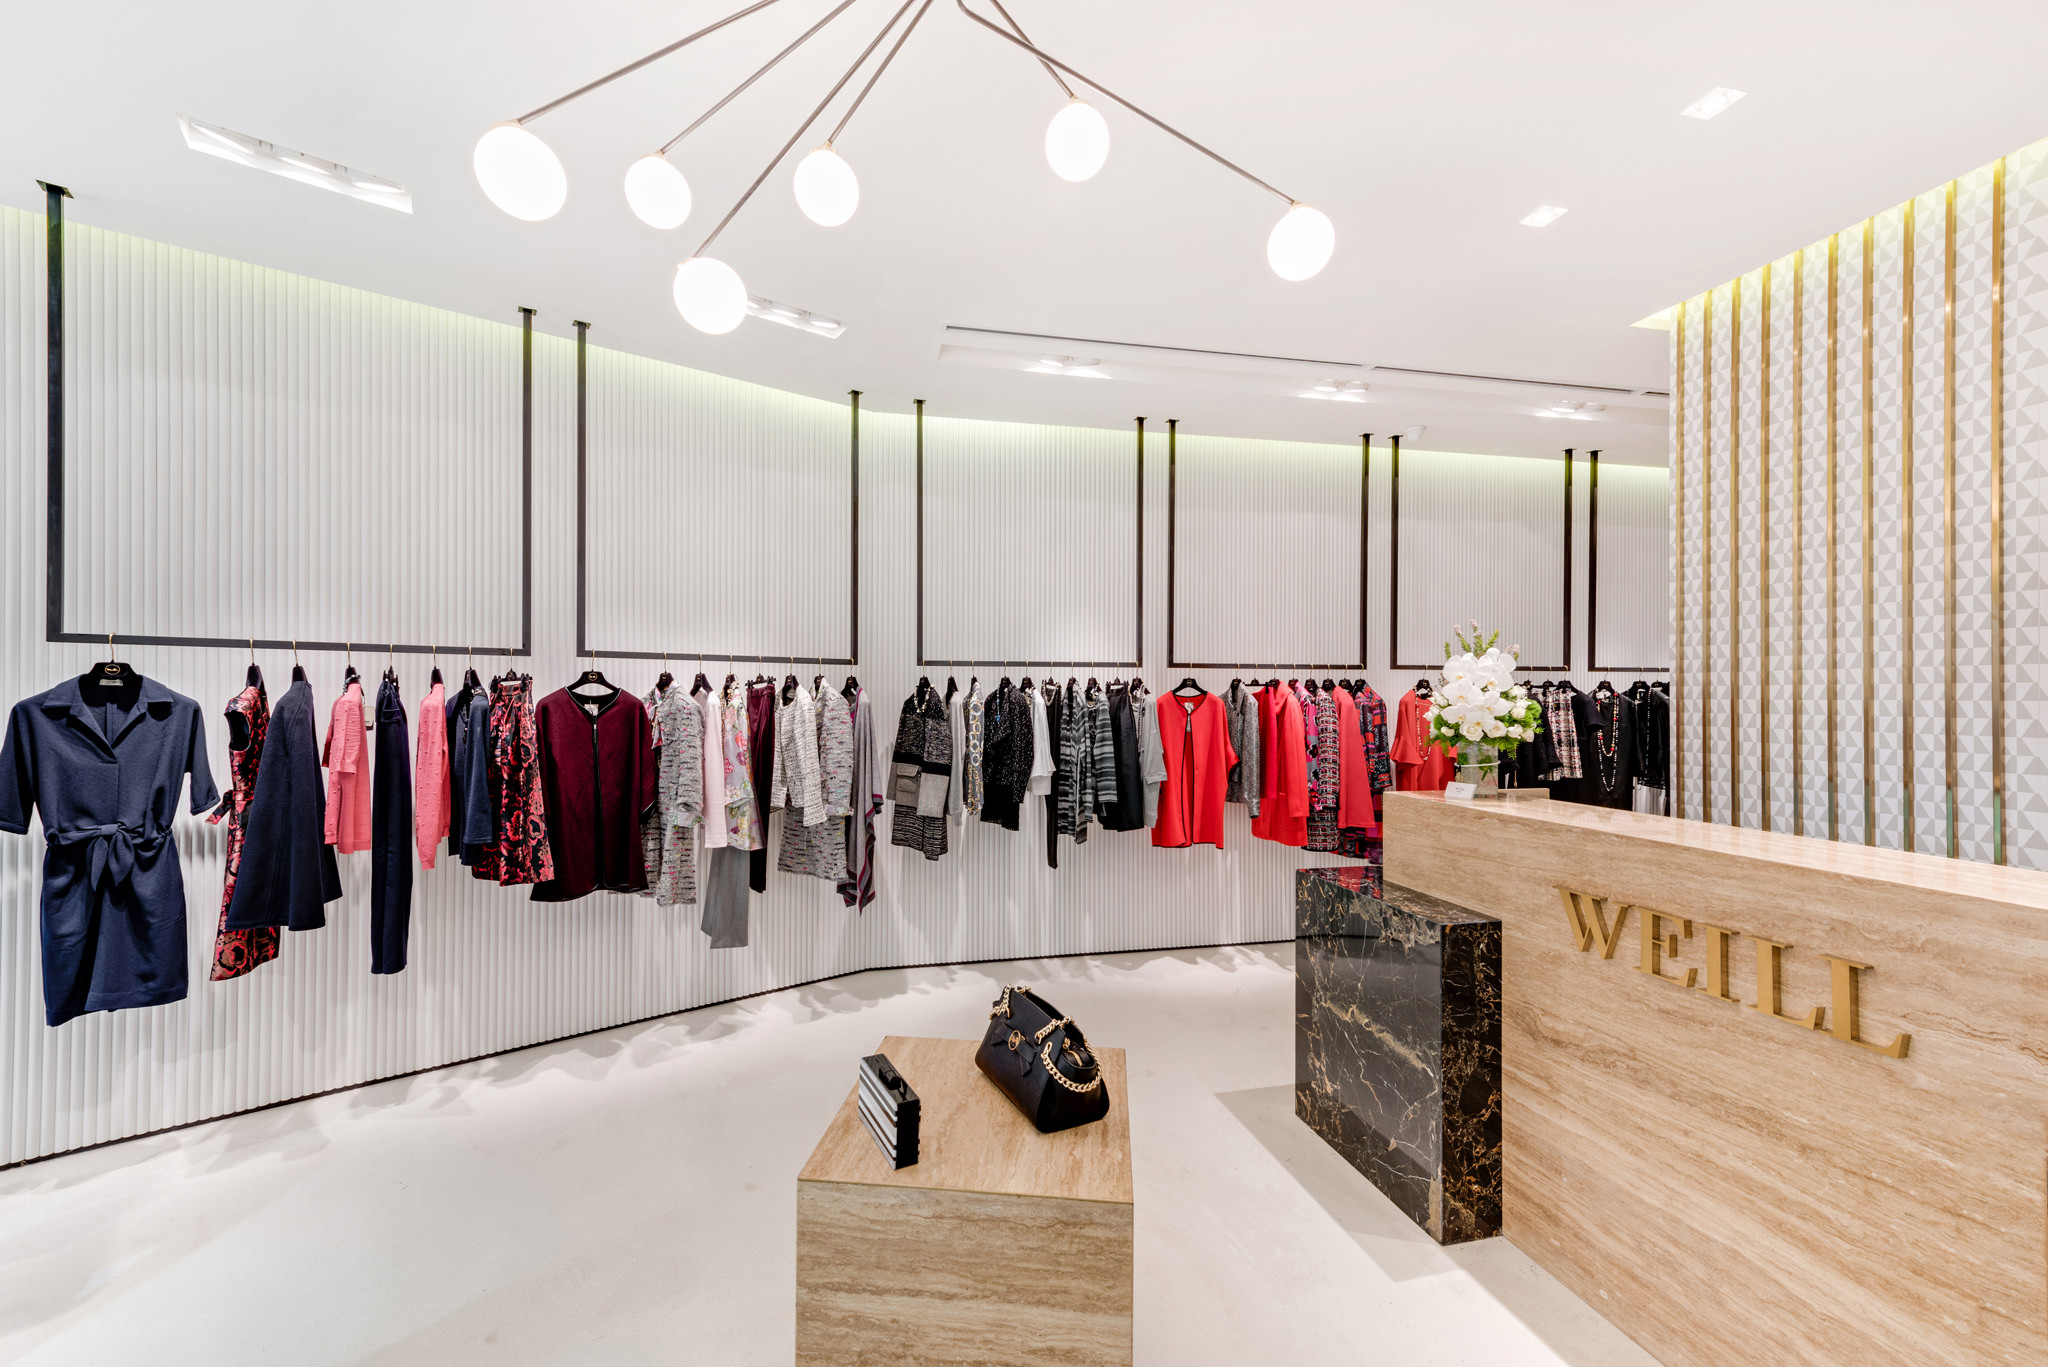 20160801 - Weill - HCM - Commercial - Interior - Store - Retouch 0003.jpg